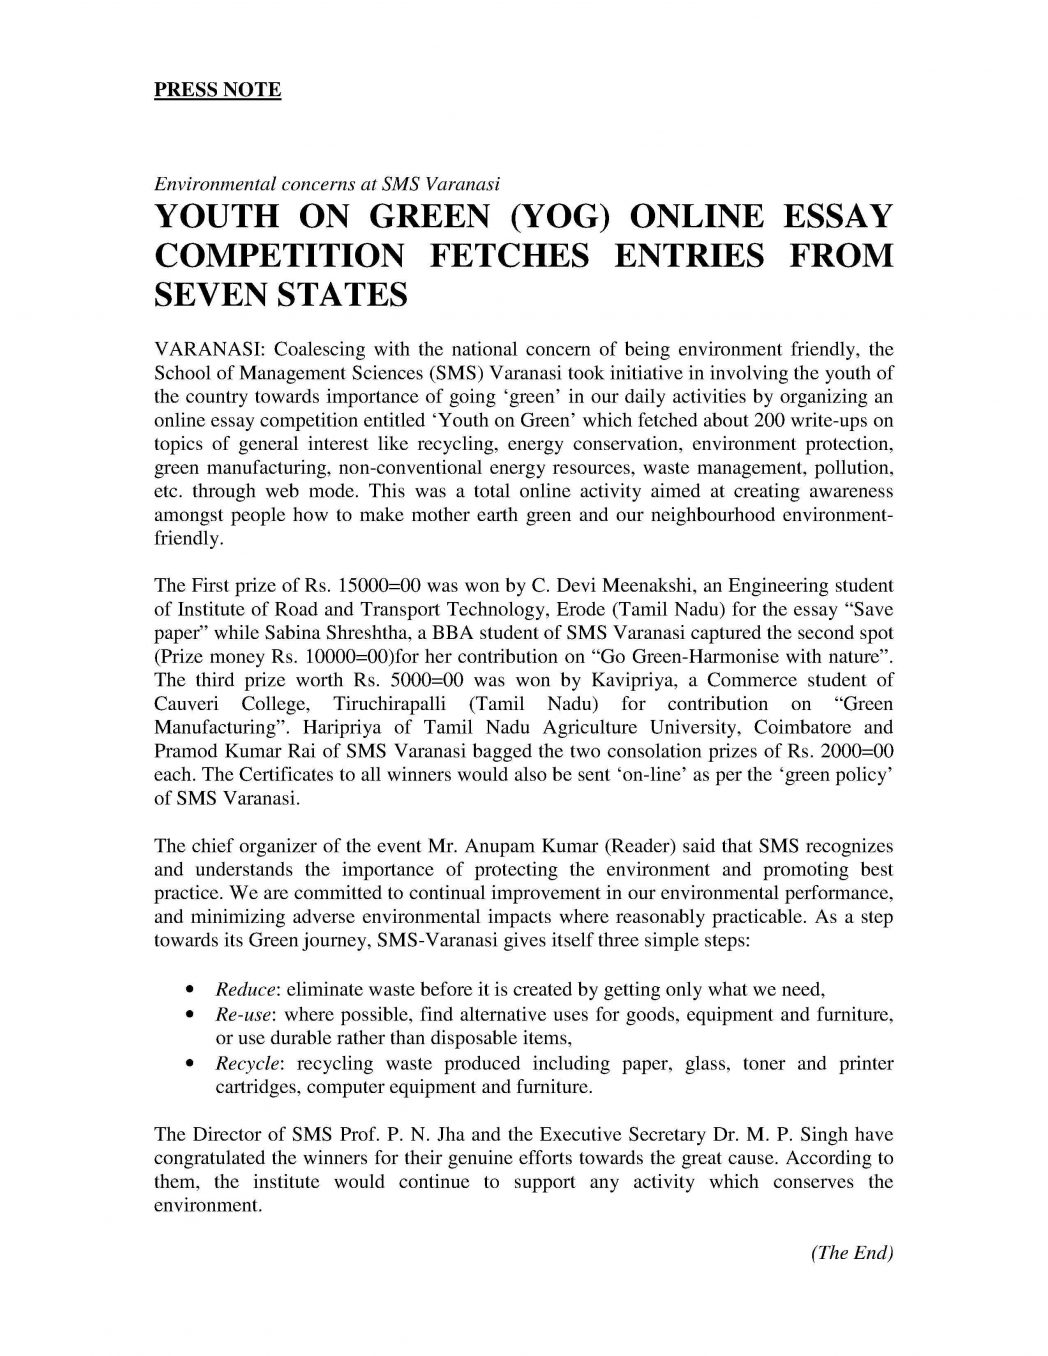 020 Best Essays For College Essay On Good Habits How Tot Application Online Yog Press Re About Yourself Examples Your Background Failure Prompt Off Hook 1048x1356 Example Amazing To Start An A Definition Begin With Dictionary Full